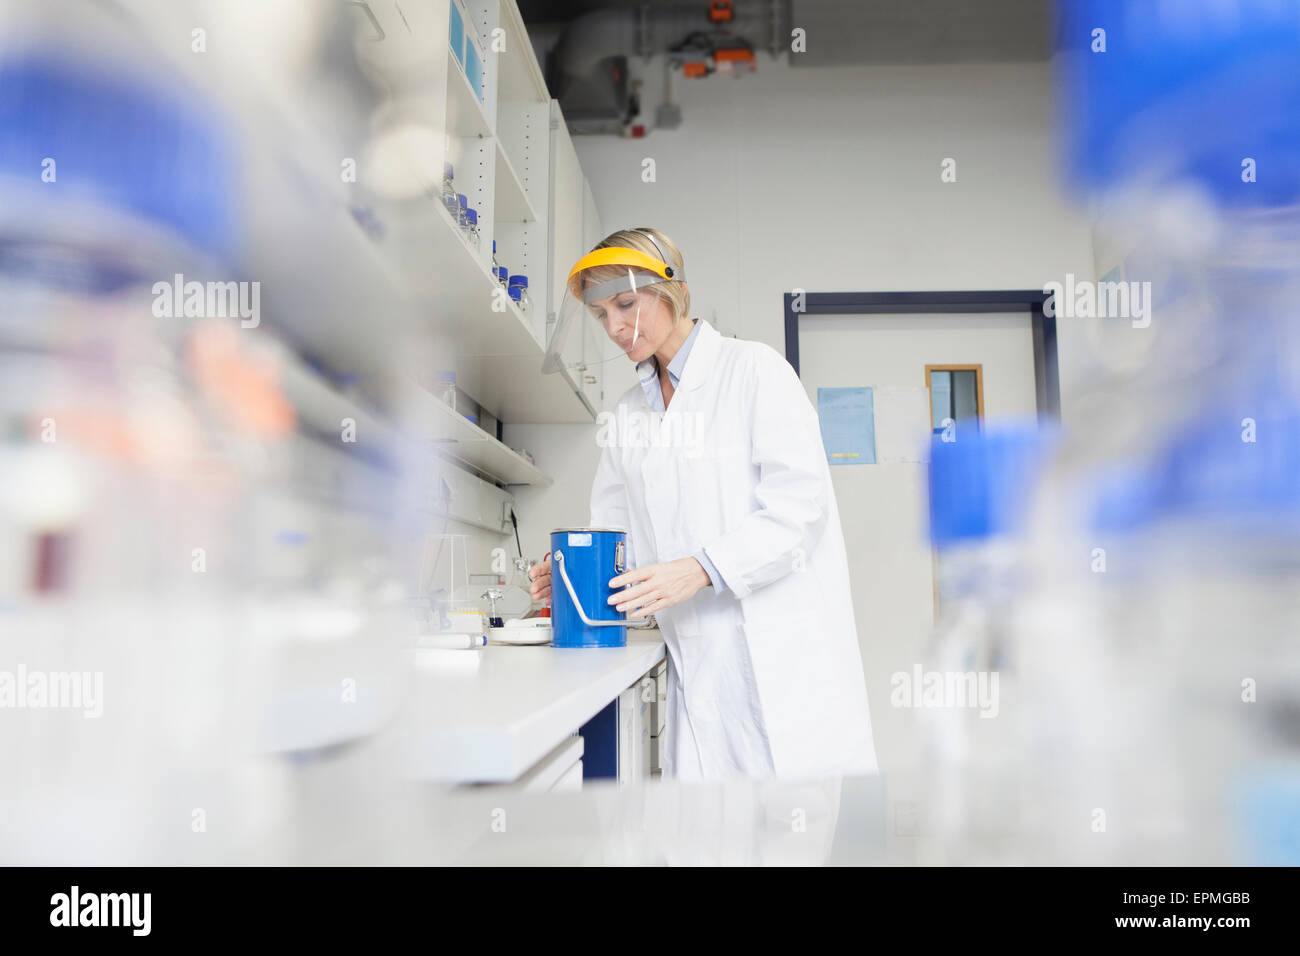 Chemist with nitrogen in a laboratory - Stock Image